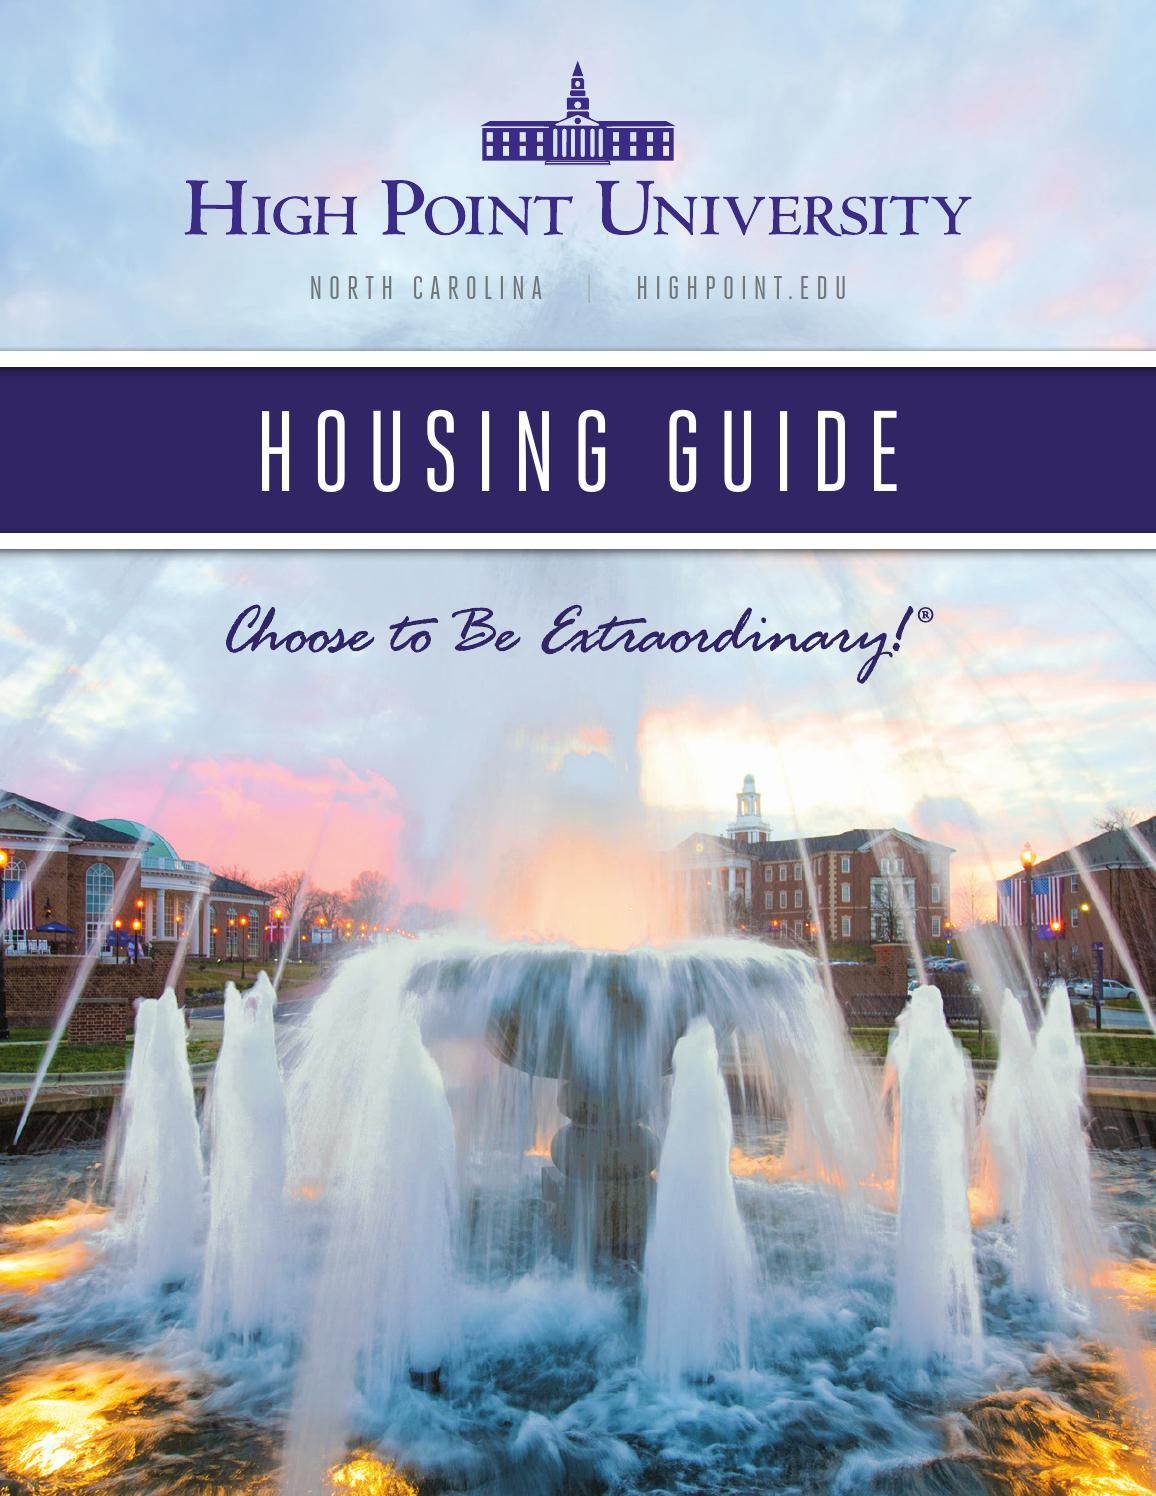 High Point University Housing Guide 2016 By High Point University   Issuu Part 61